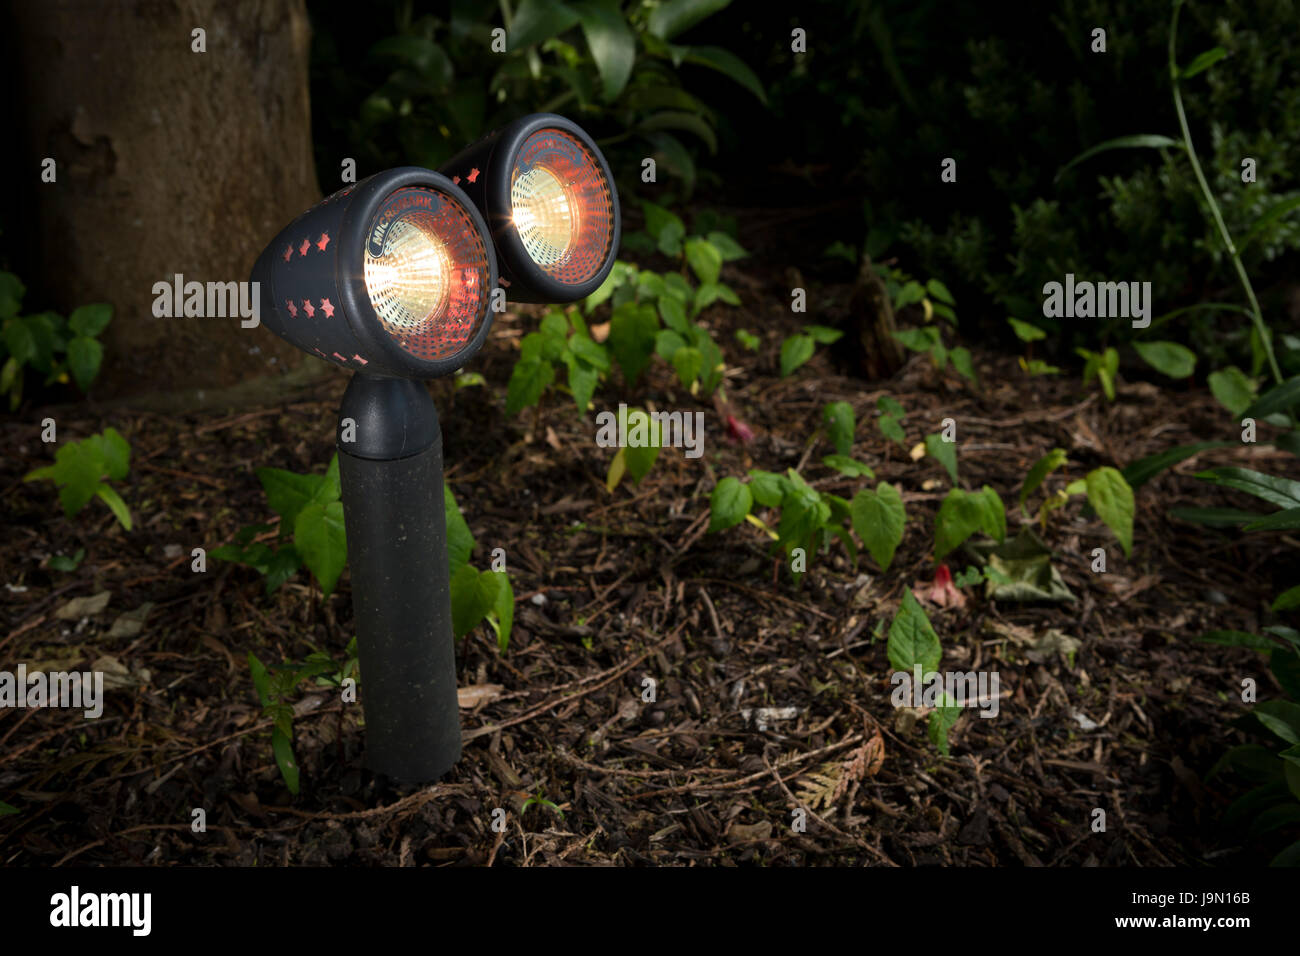 Garden weather proof lighting. Spot lighting that can be installed in your garden to highlight features and ornaments. - Stock Image